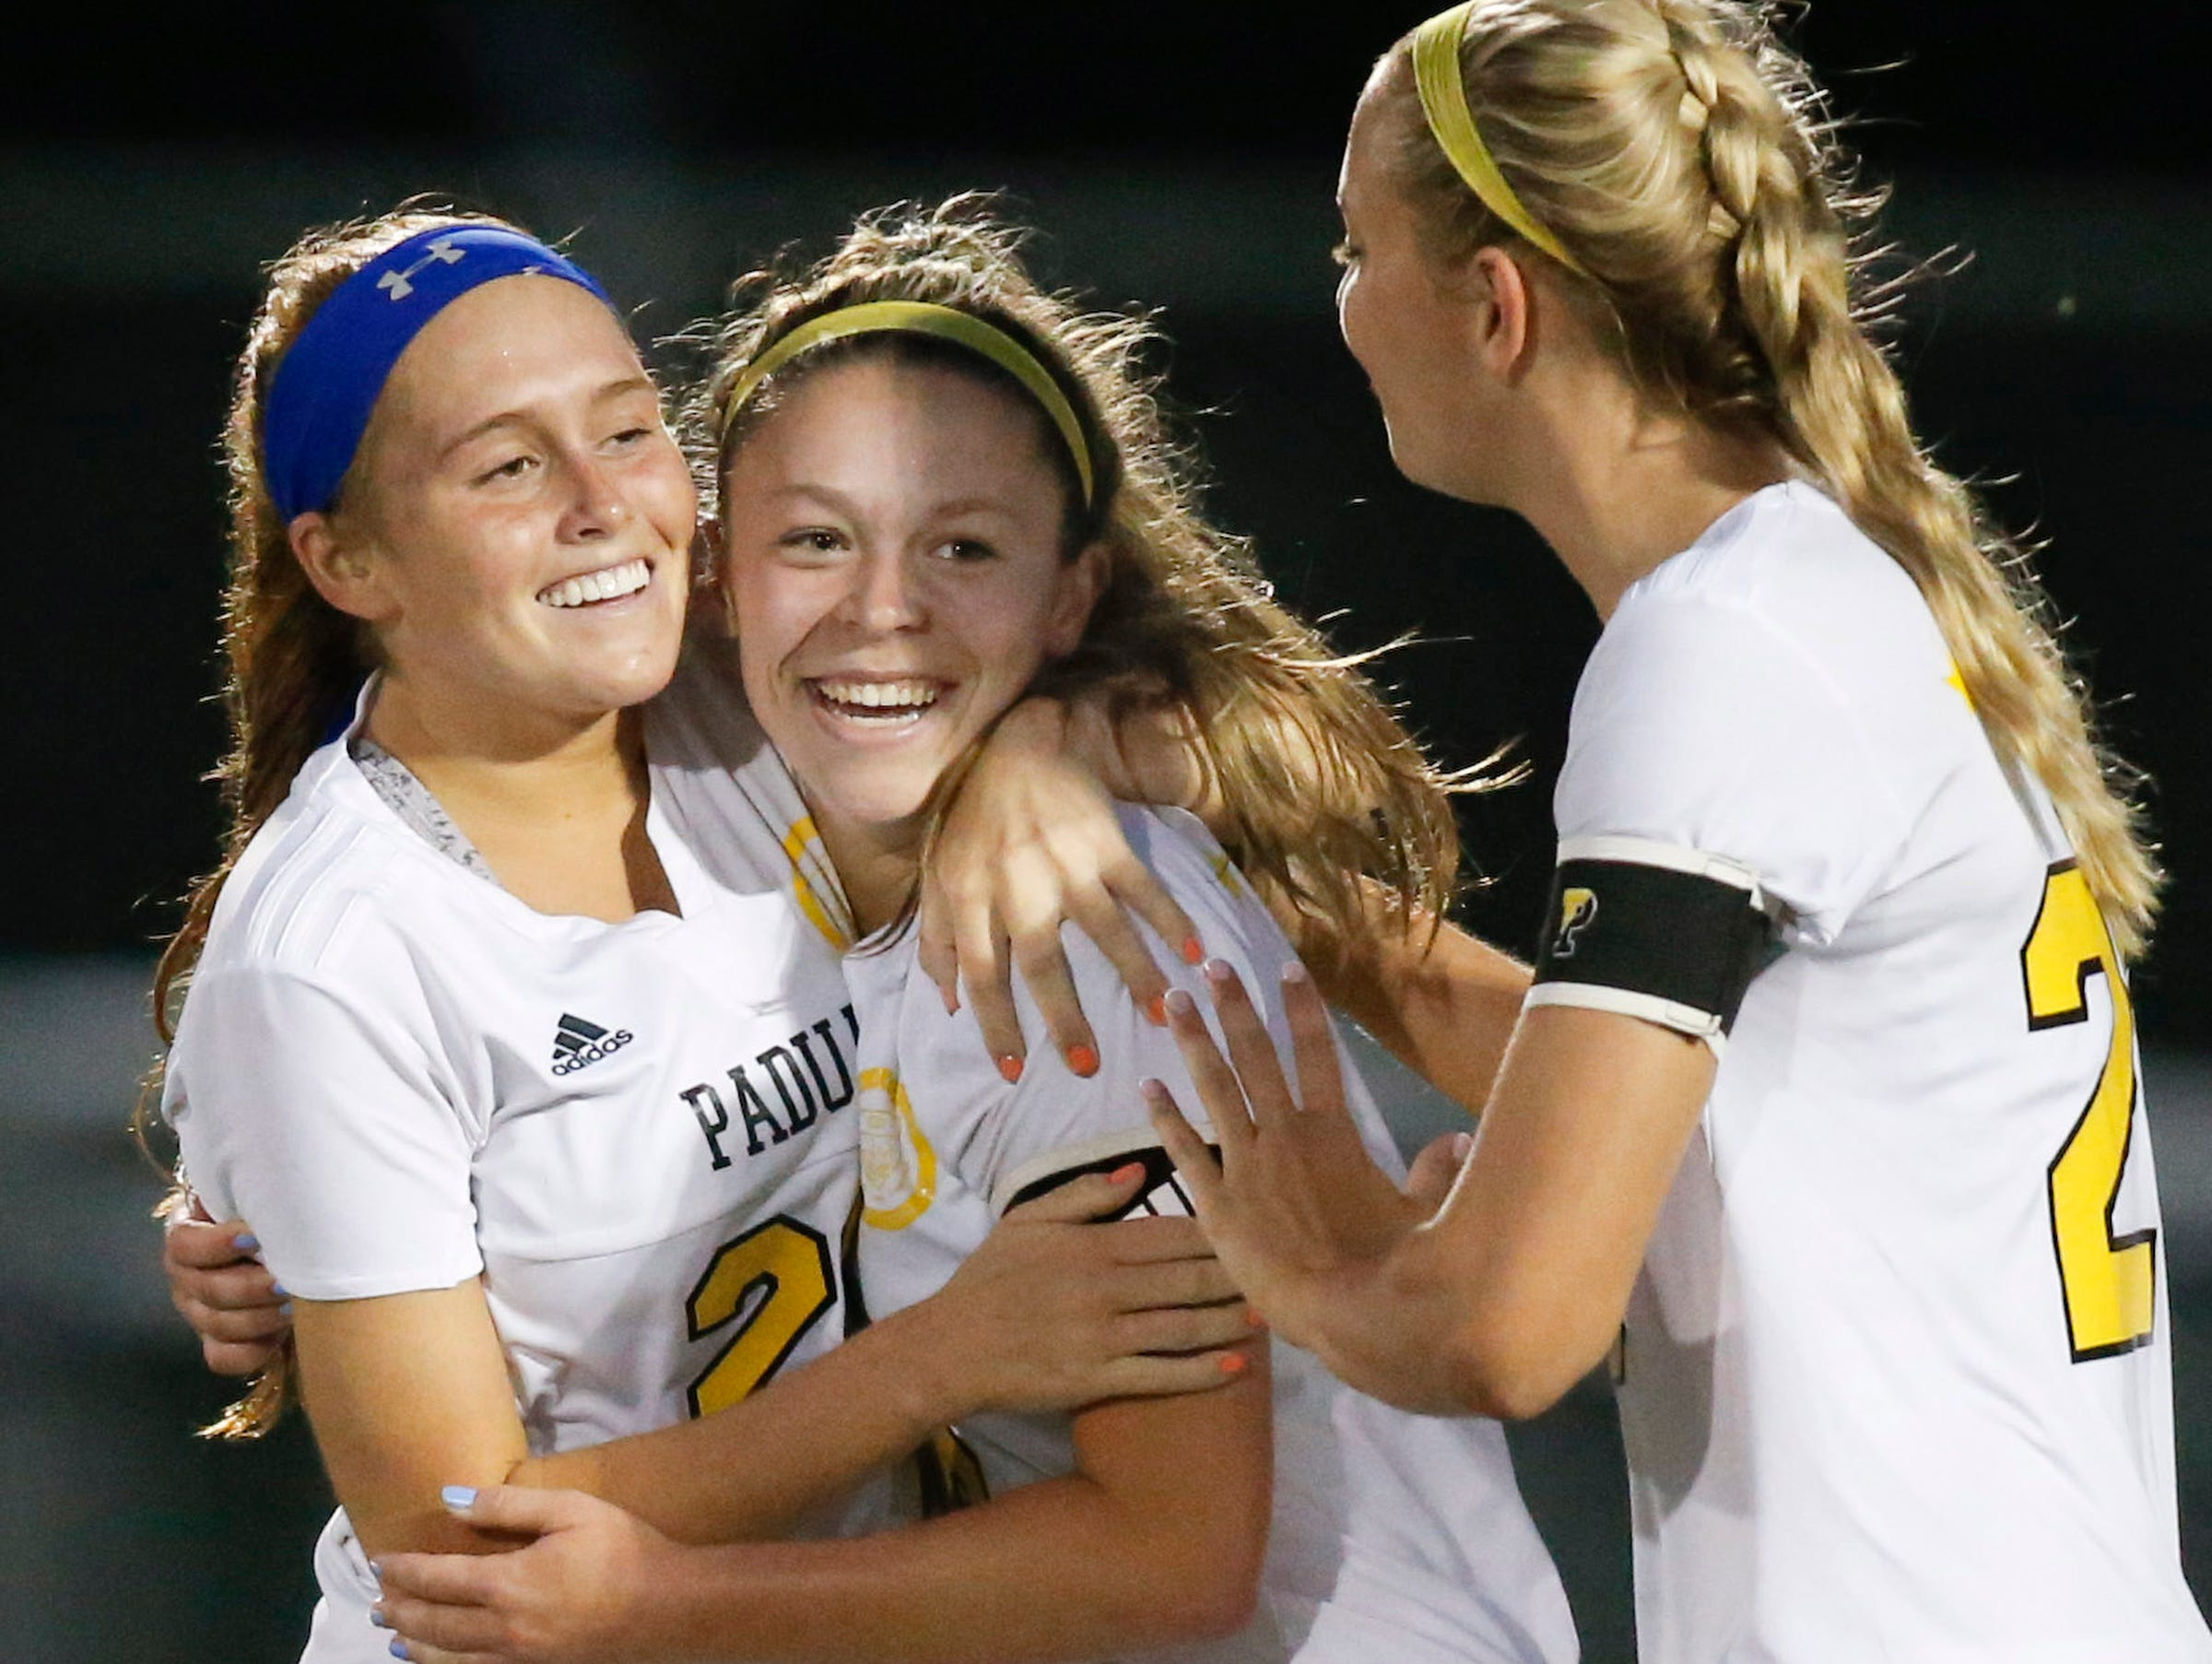 Padua's Sarah Brush (center) celebrates her opening goal with Mackenzie Scully (left) and Molly Drach in the first half against Caesar Rodney in the DIAA Division I state title game at Smyrna High School Friday.